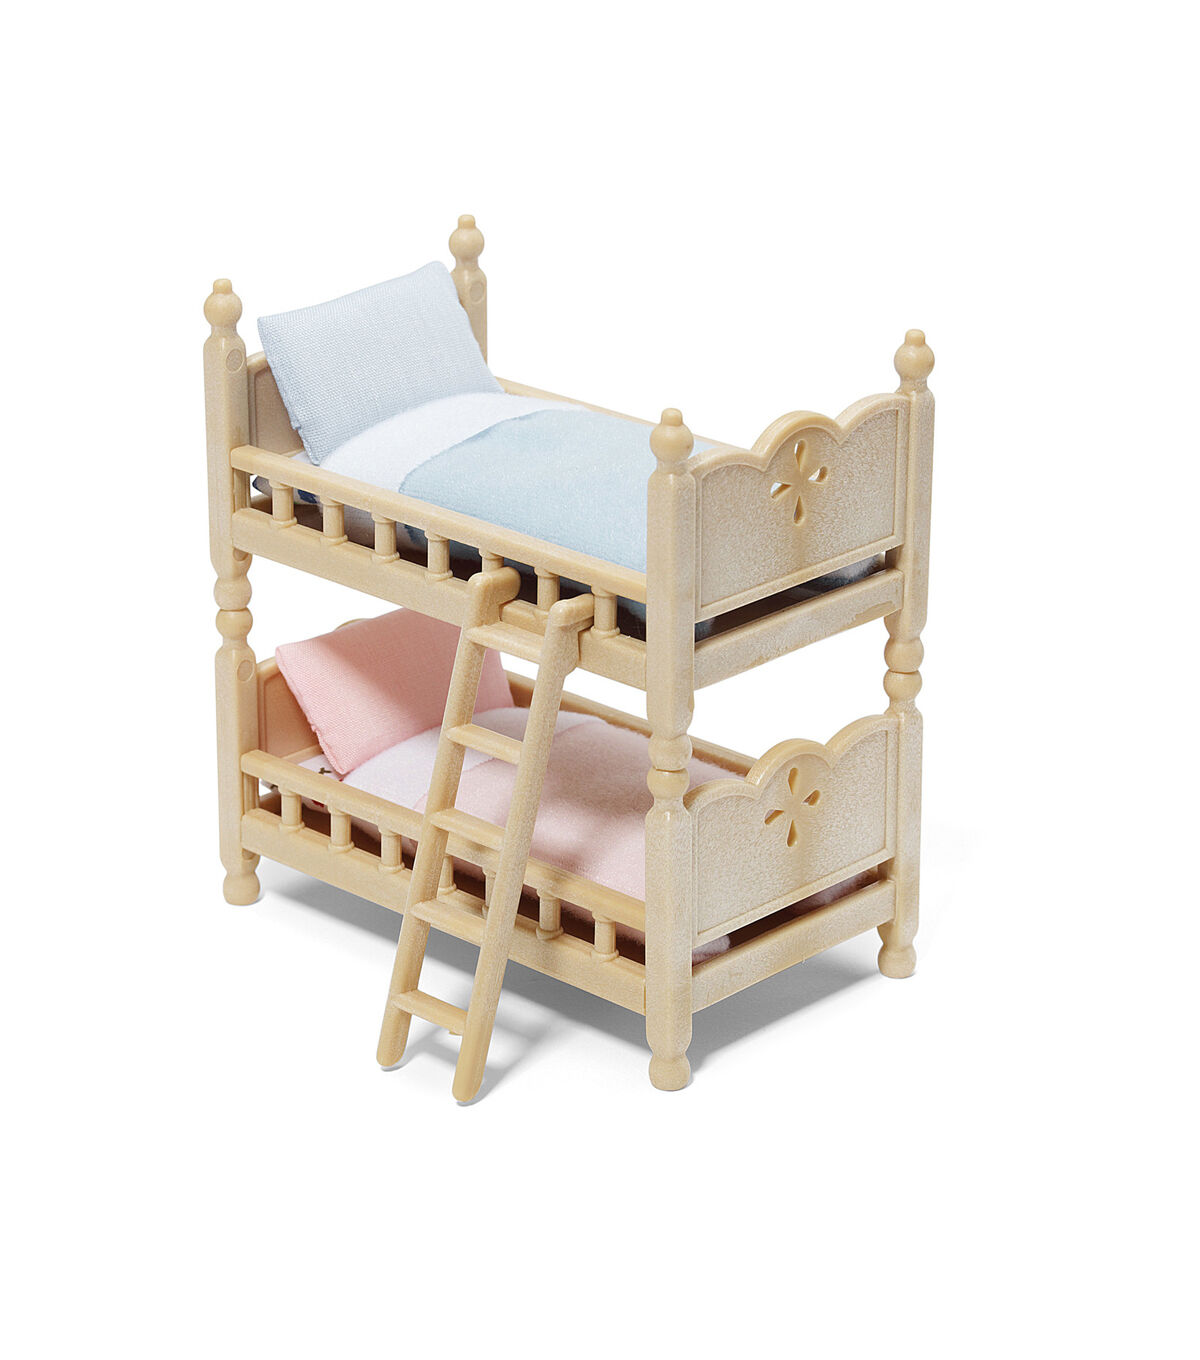 Cheap Wooden Dollhouse Furniture Diy Calico Critters Bunk Beds Set Etsy Doll House Furniture Accessories Joann